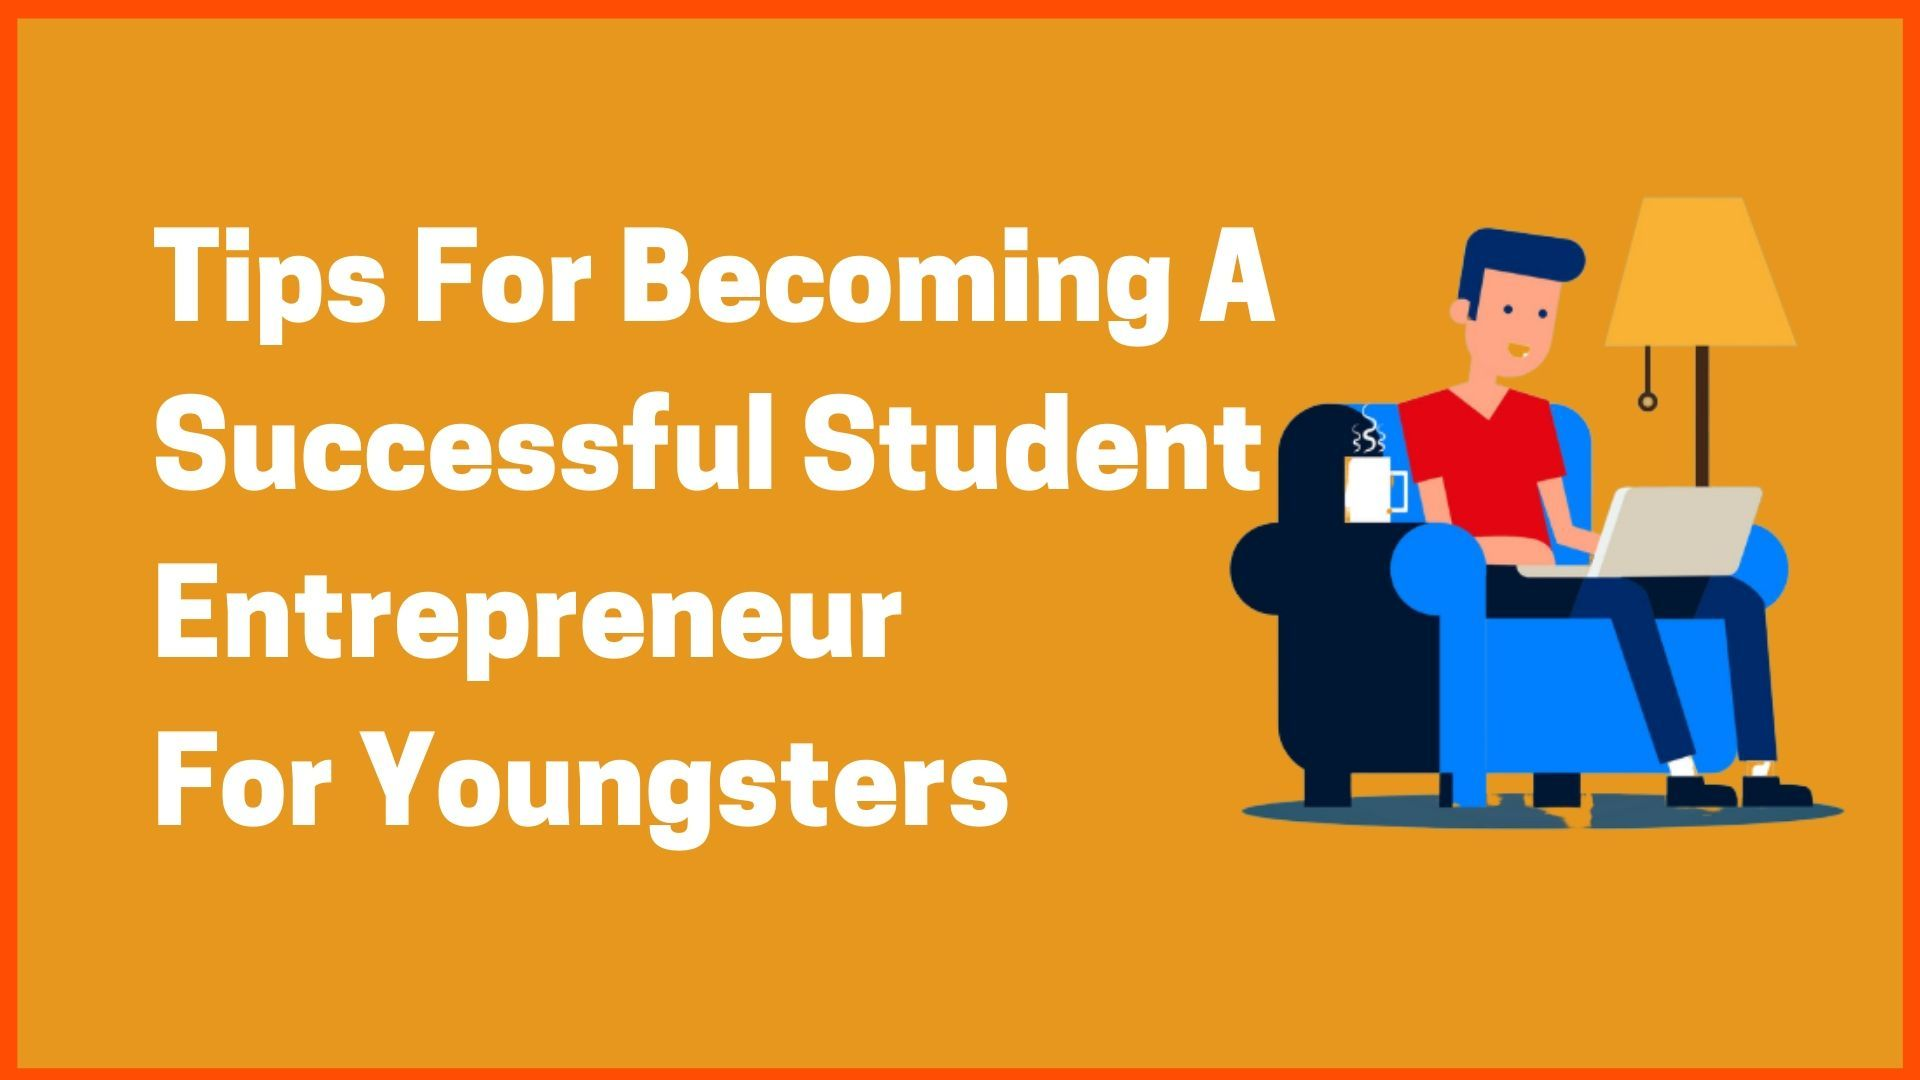 Tips For Becoming A Successful Student Entrepreneur For Youngsters